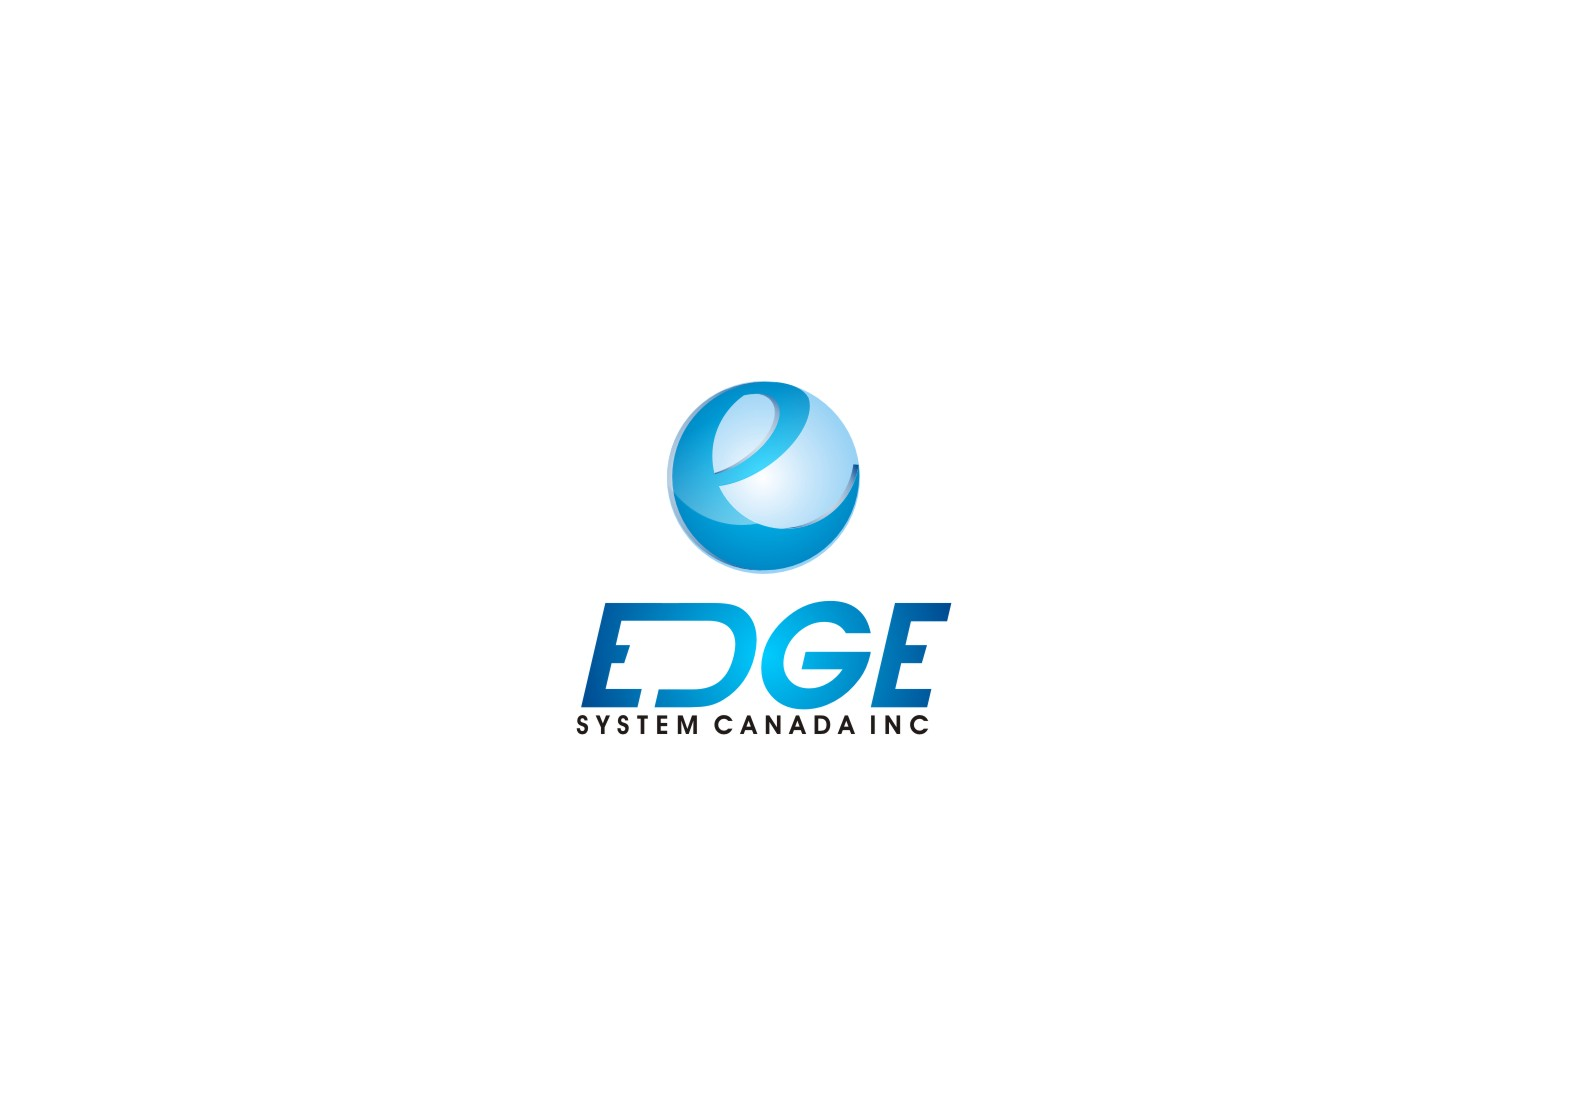 Logo Design by yanxsant - Entry No. 94 in the Logo Design Contest New Logo Design for Edge Systems Canada Inc.